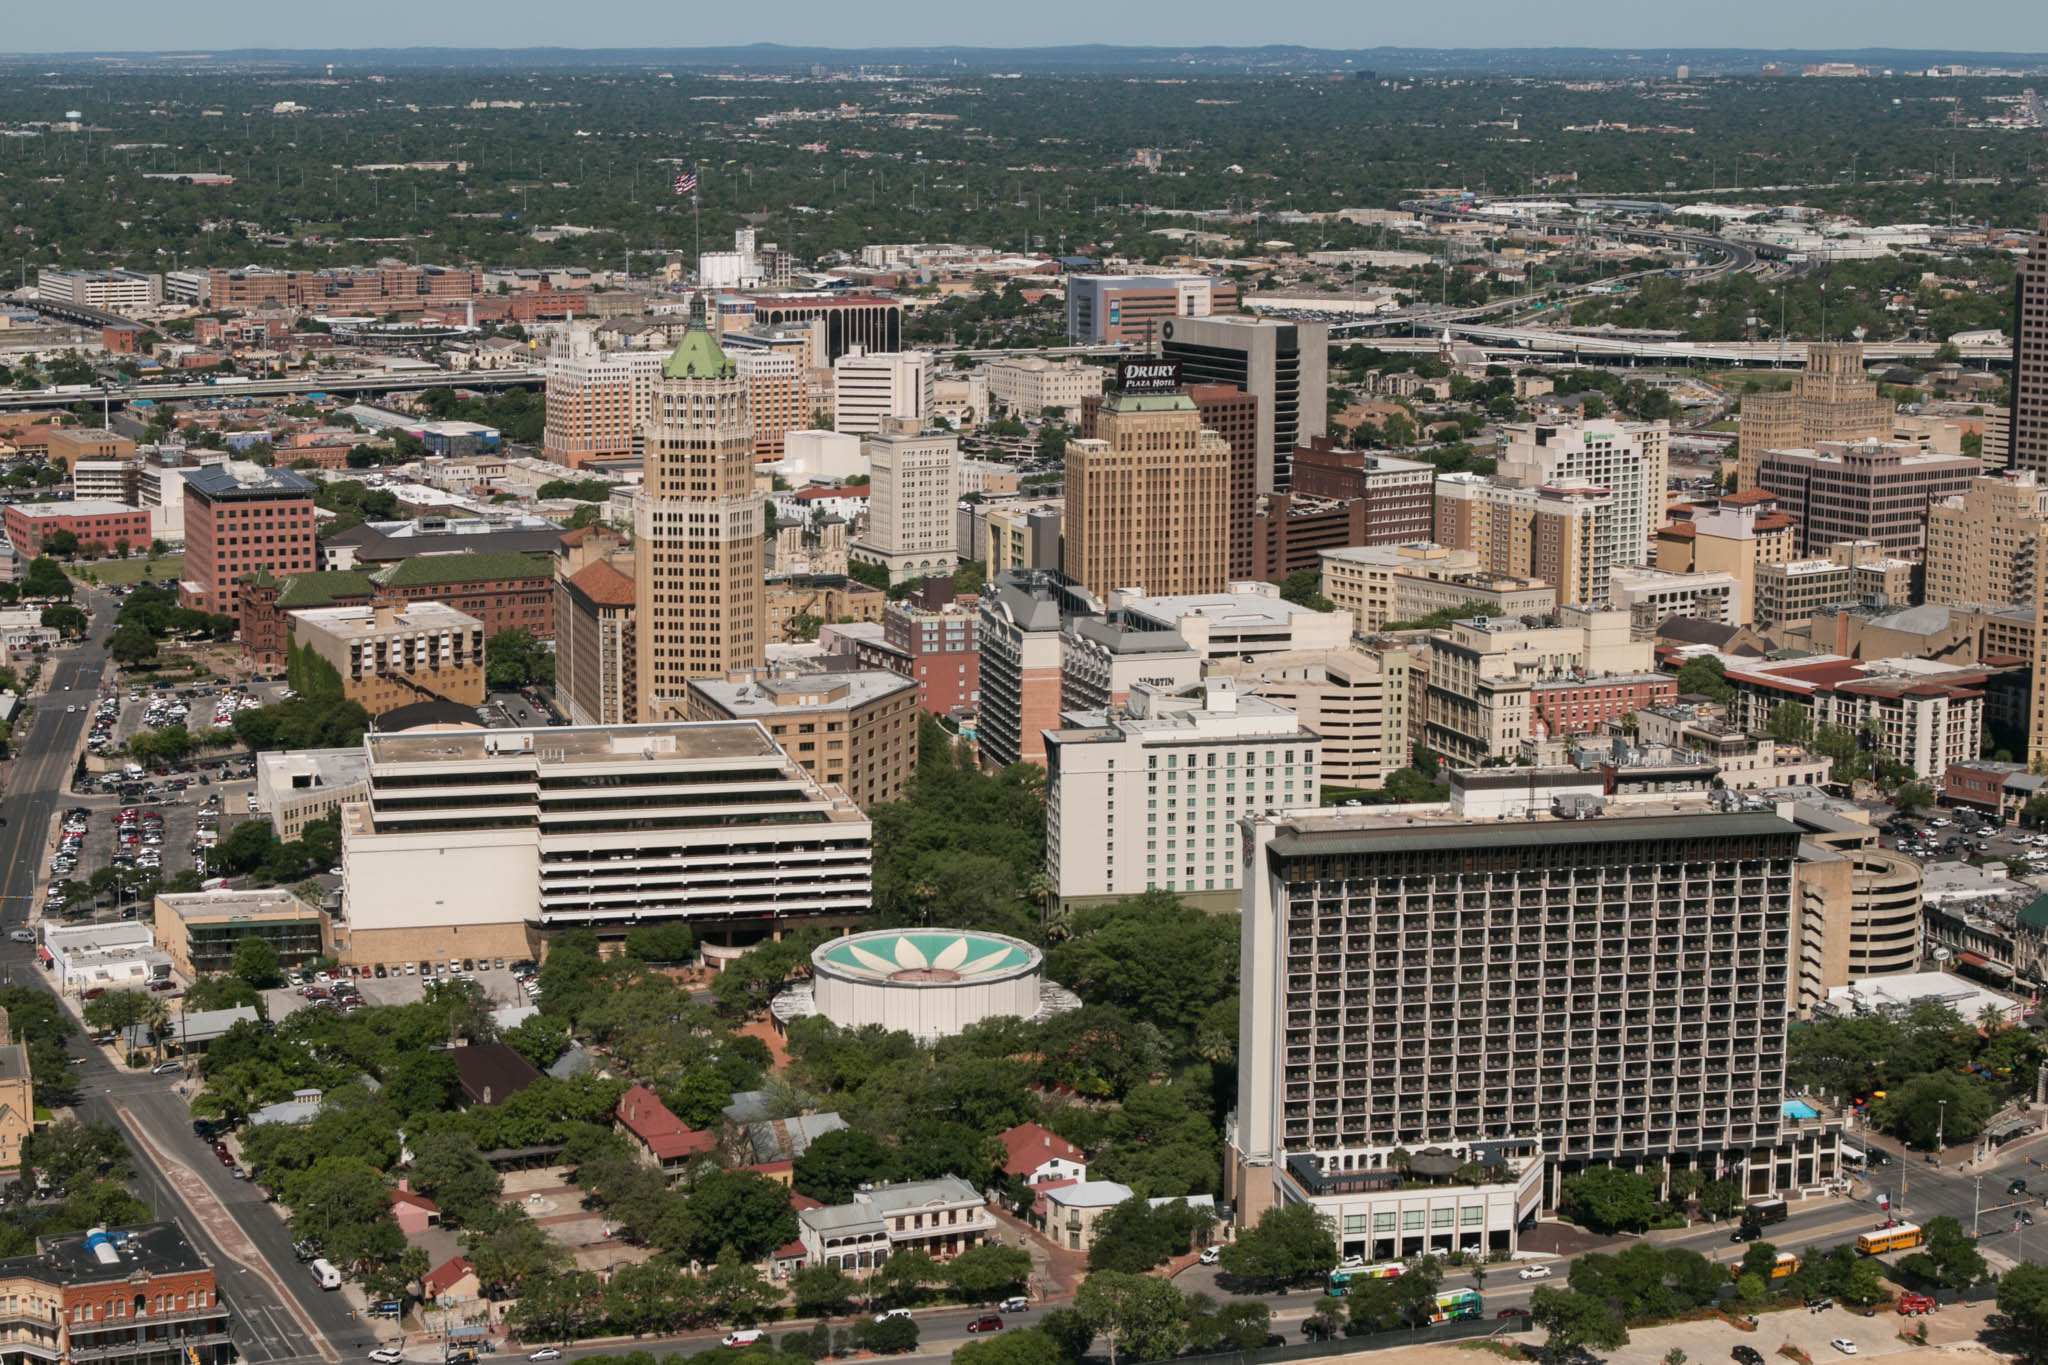 A view of District 1 can be seen from the Tower of the Americas.